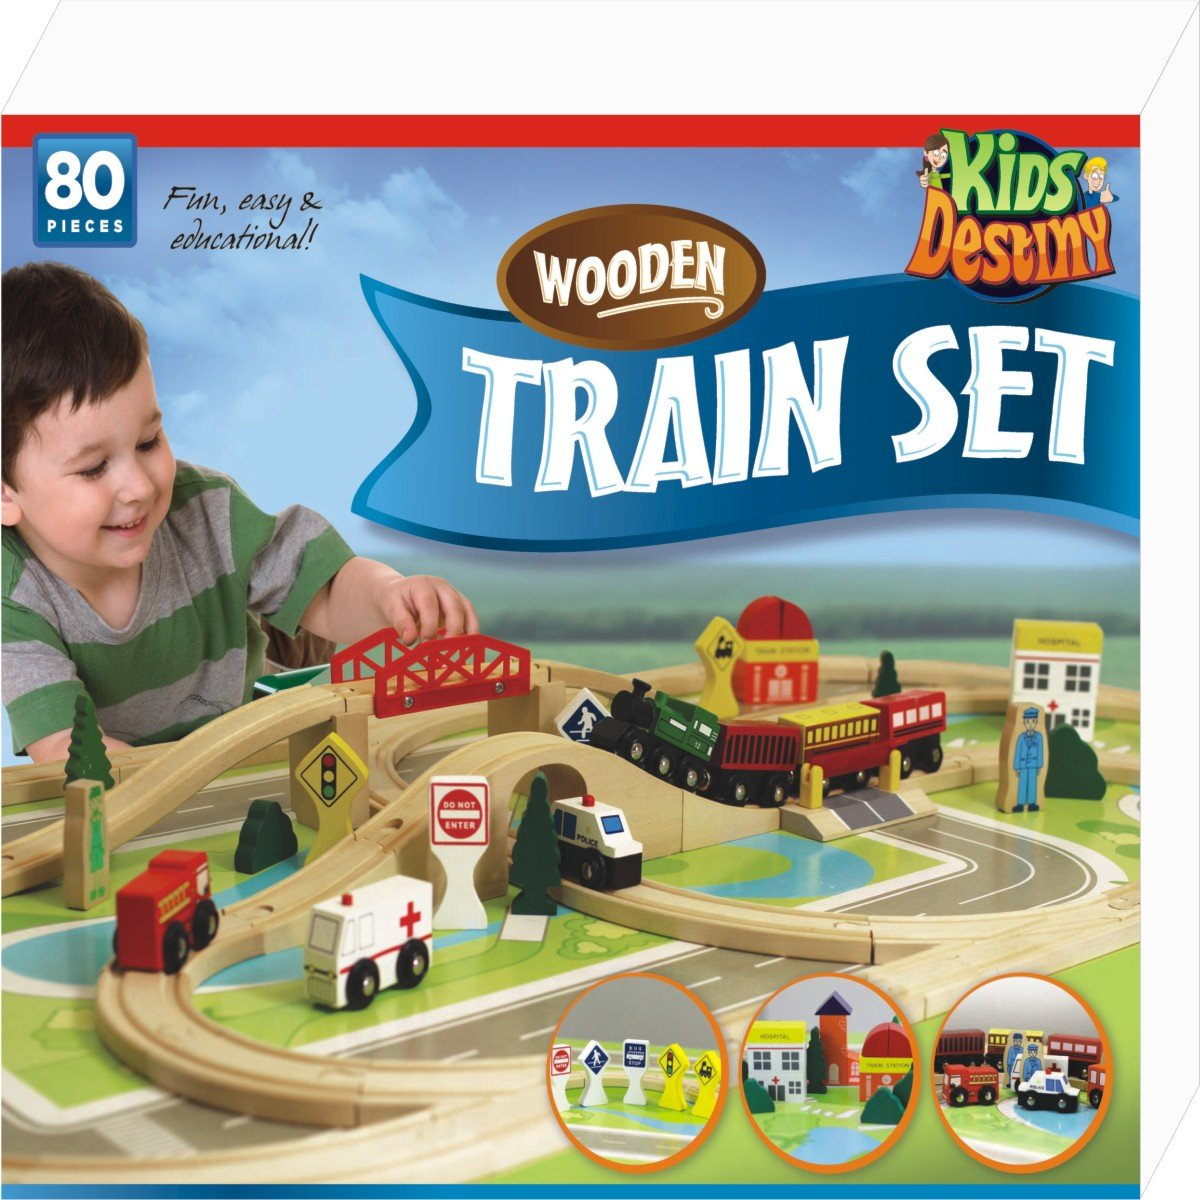 Deluxe 80 Pc. Wooden Train Set Compatible with Thomas & Brio